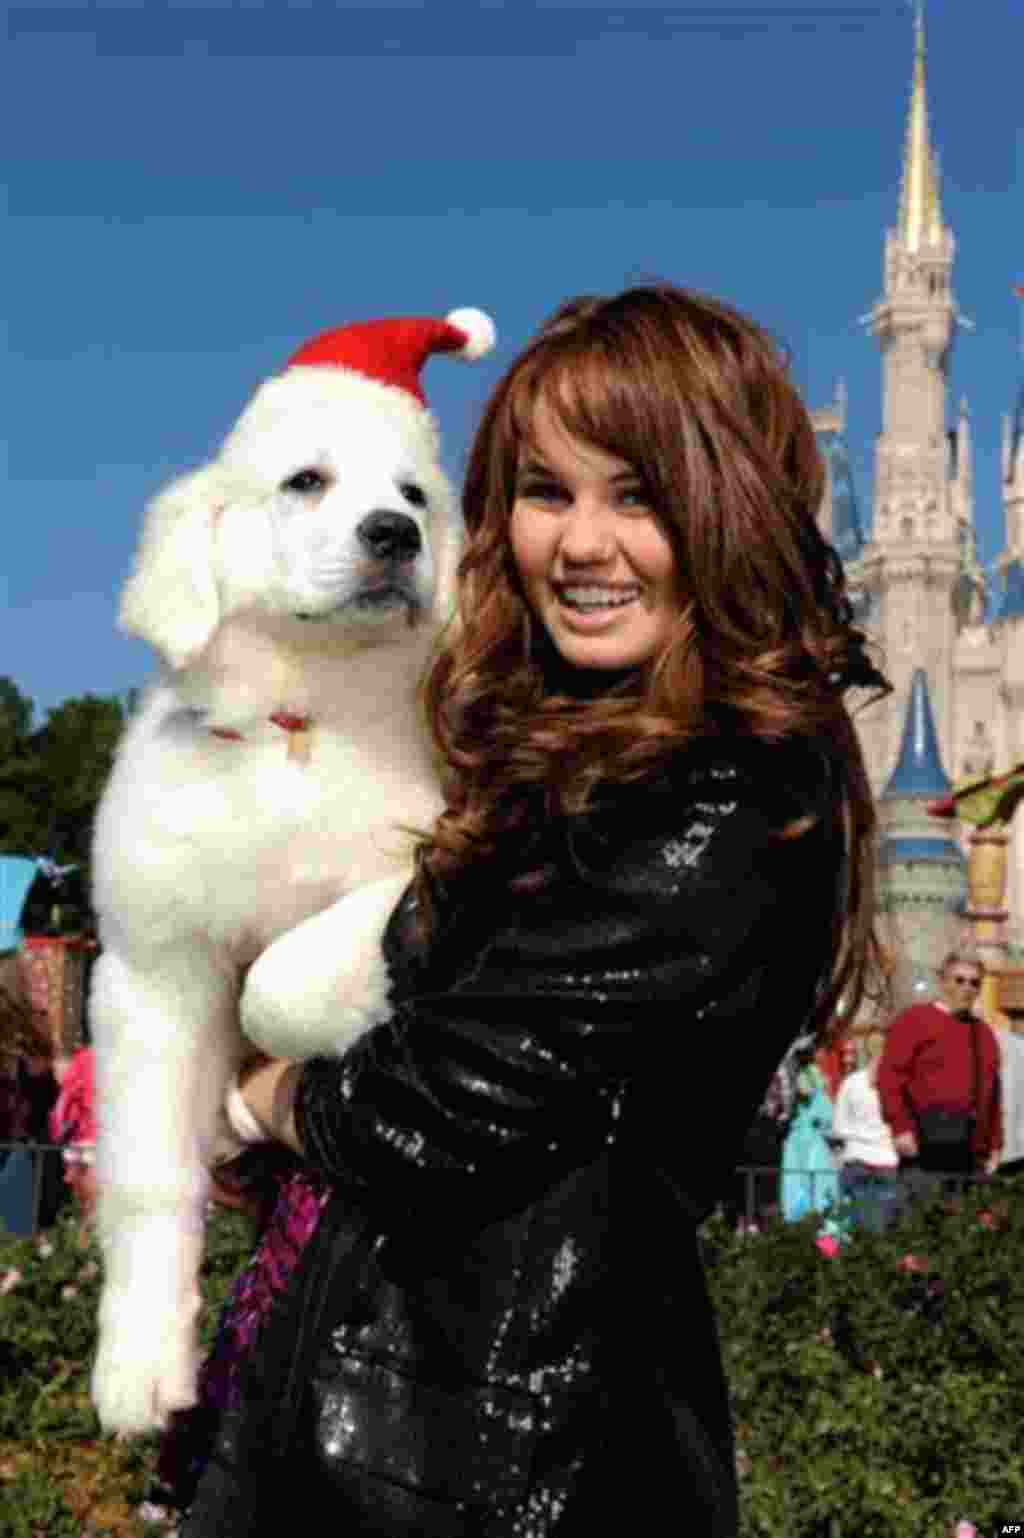 """In this publicity image released by Disney, actress and singer Debby Ryan, star of Disney Channel's """"The Suite Life on Deck,"""" with the canine star of the new Disney holiday movie """"The Search for Santa Paws"""" on Thursday, Dec. 2, 2010 while taping a segmen"""